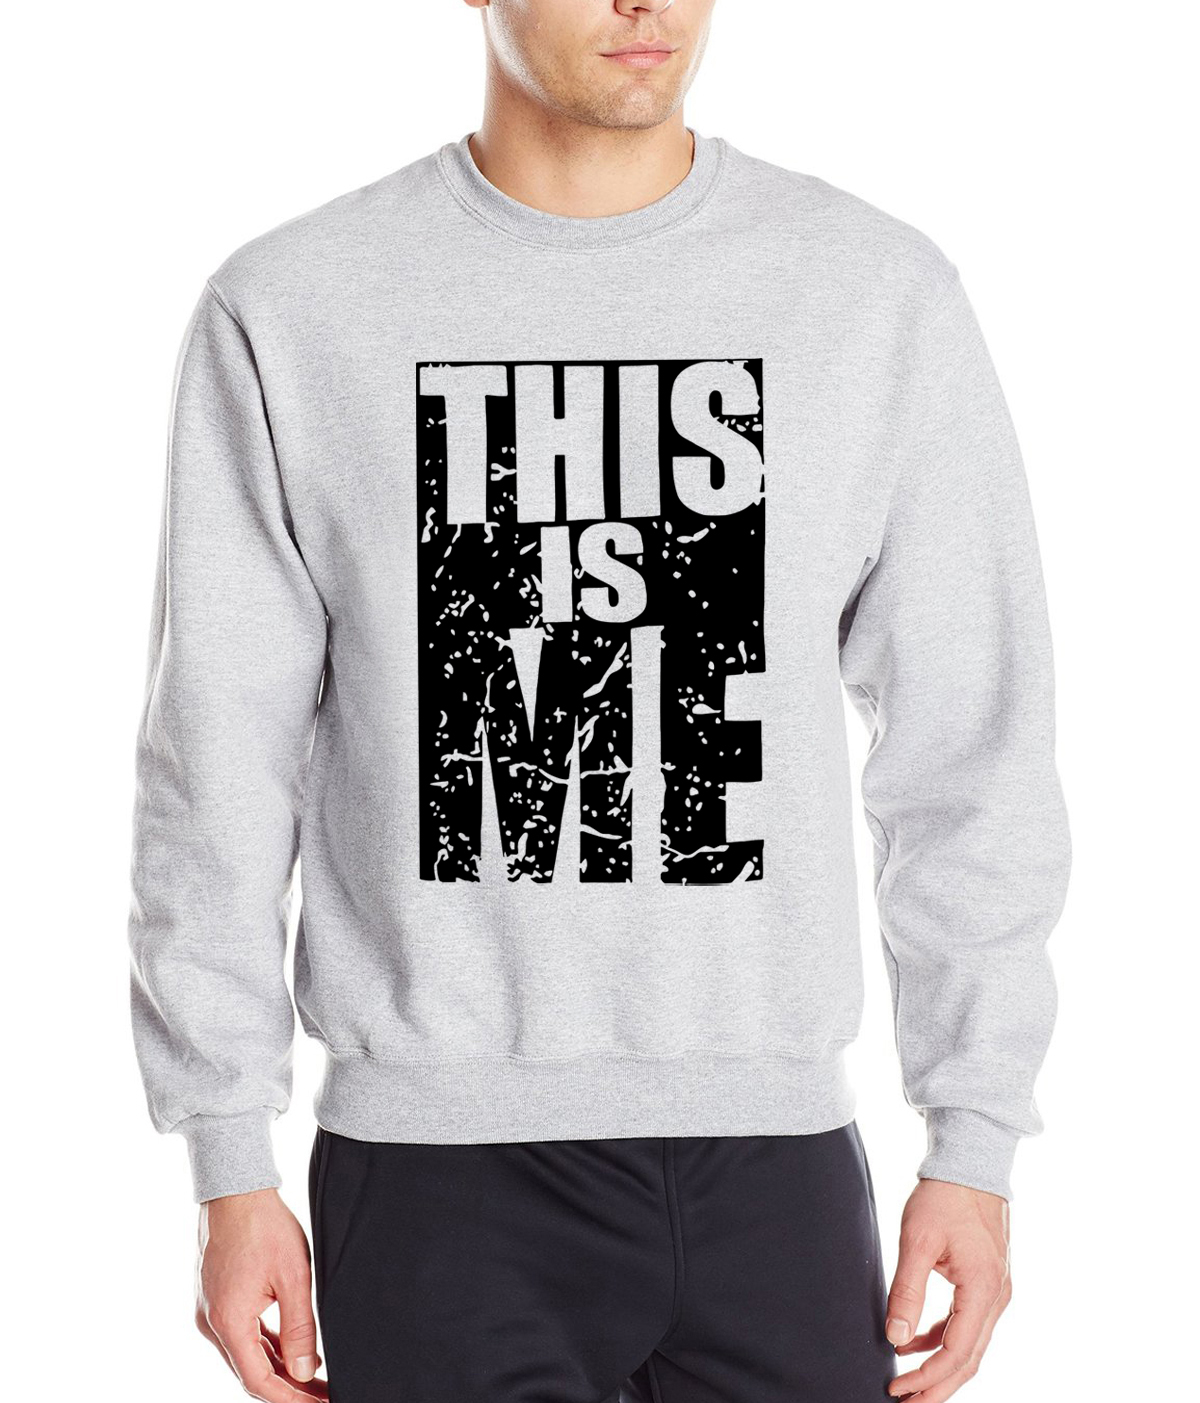 2019 new This Is Me letters personalized spring winter fashion sweatshirts hoodies hip hop style brand clothing loose tracksuit